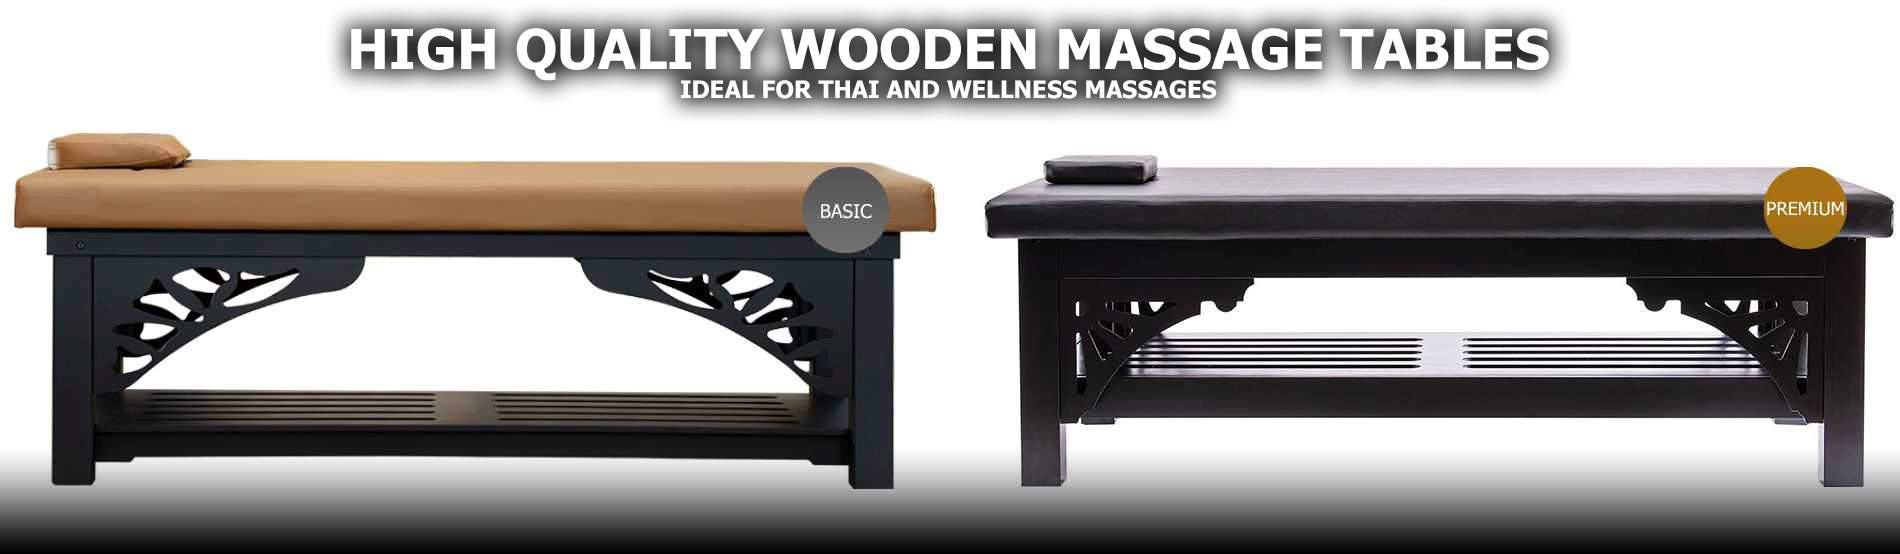 wooden massage tables thaimassage